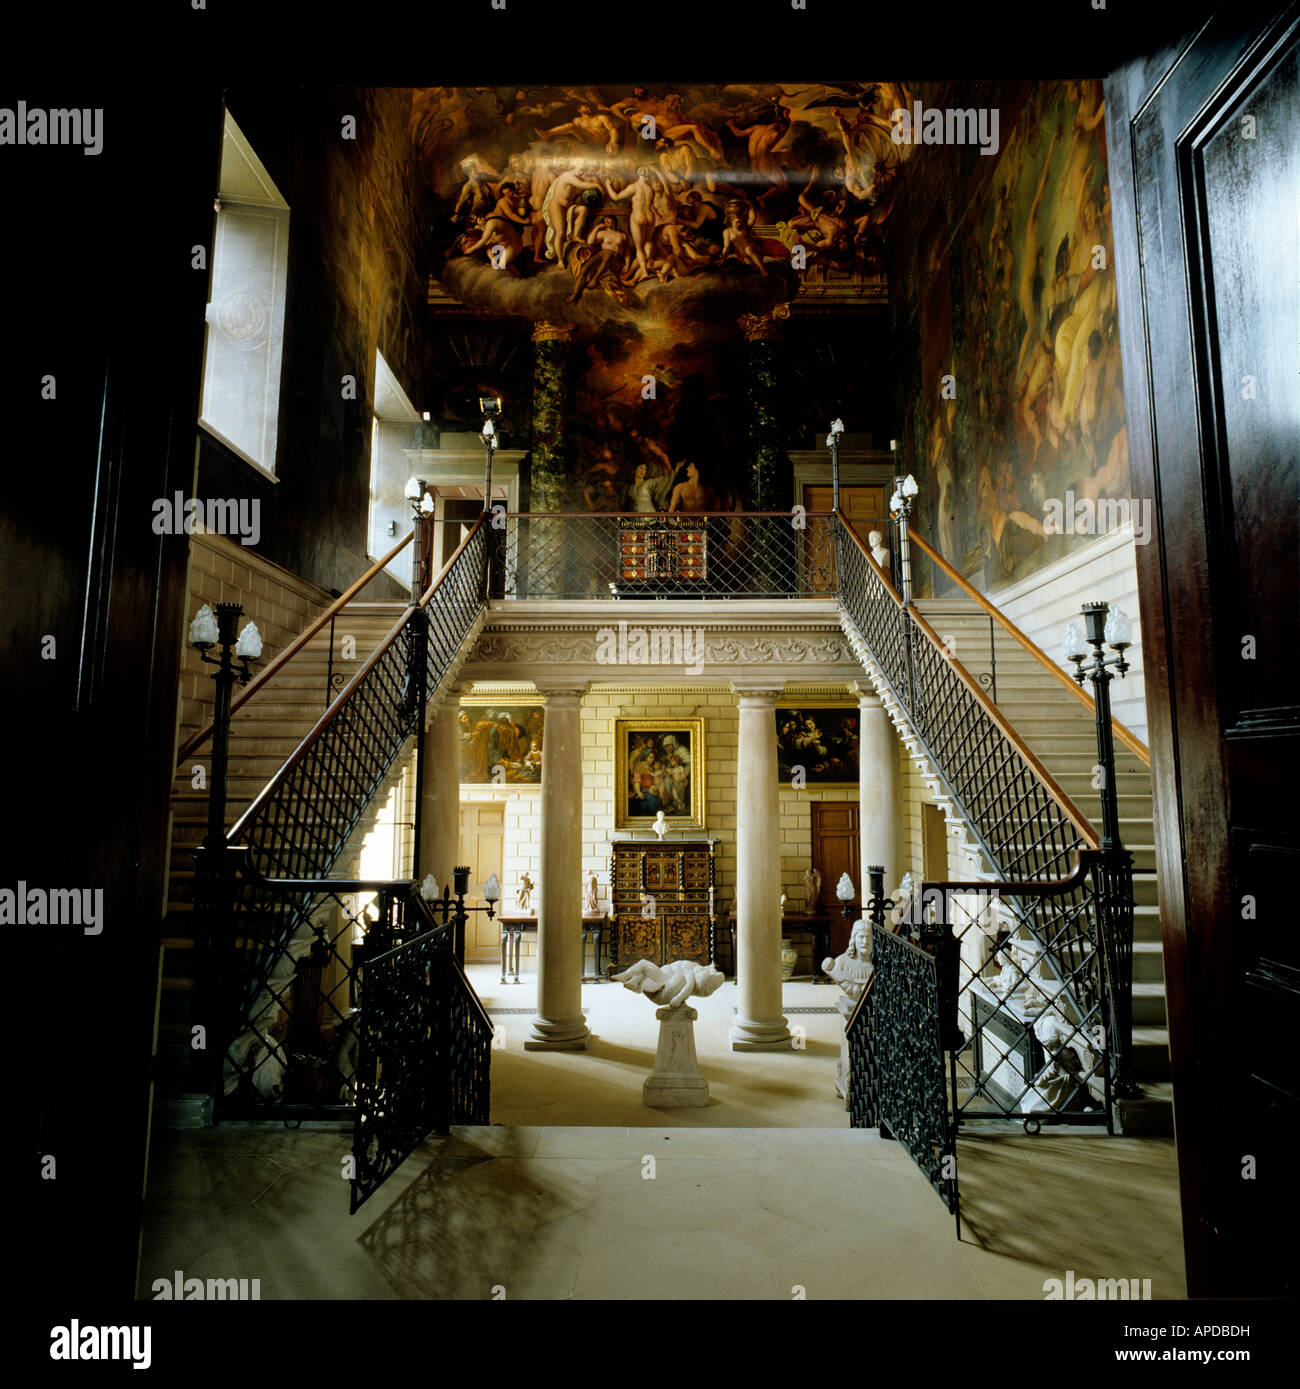 Grand Entrance With Staircase And Colonnaded Hall In English Stately Home    Stock Image Part 55